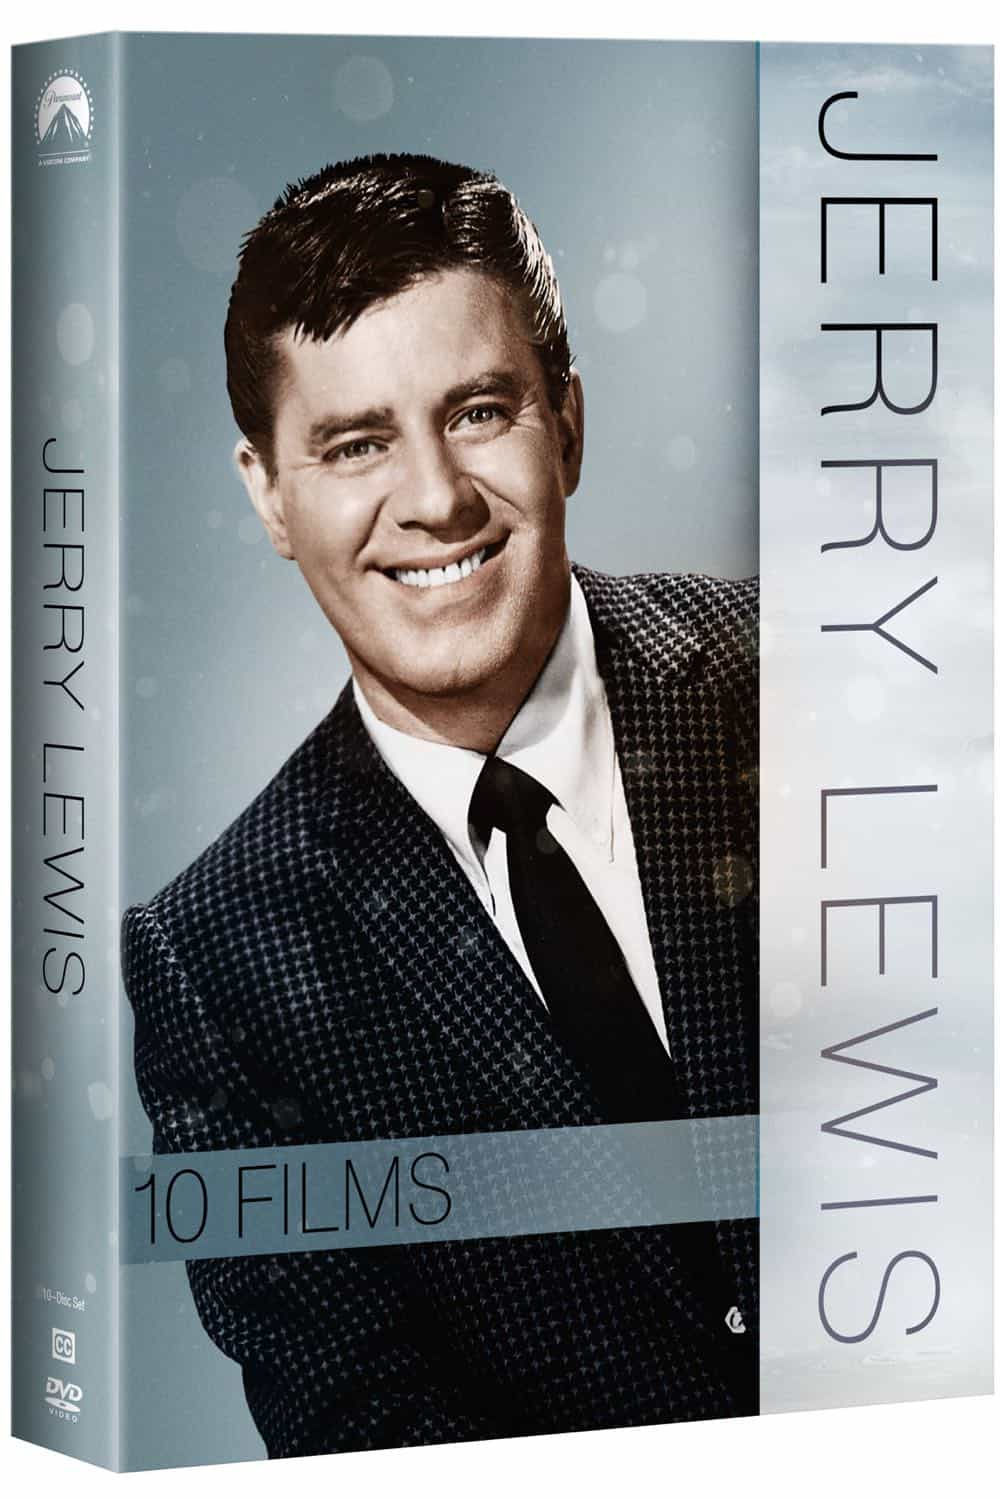 Jerry-Lewis-10-Film-Collection-DVD-2